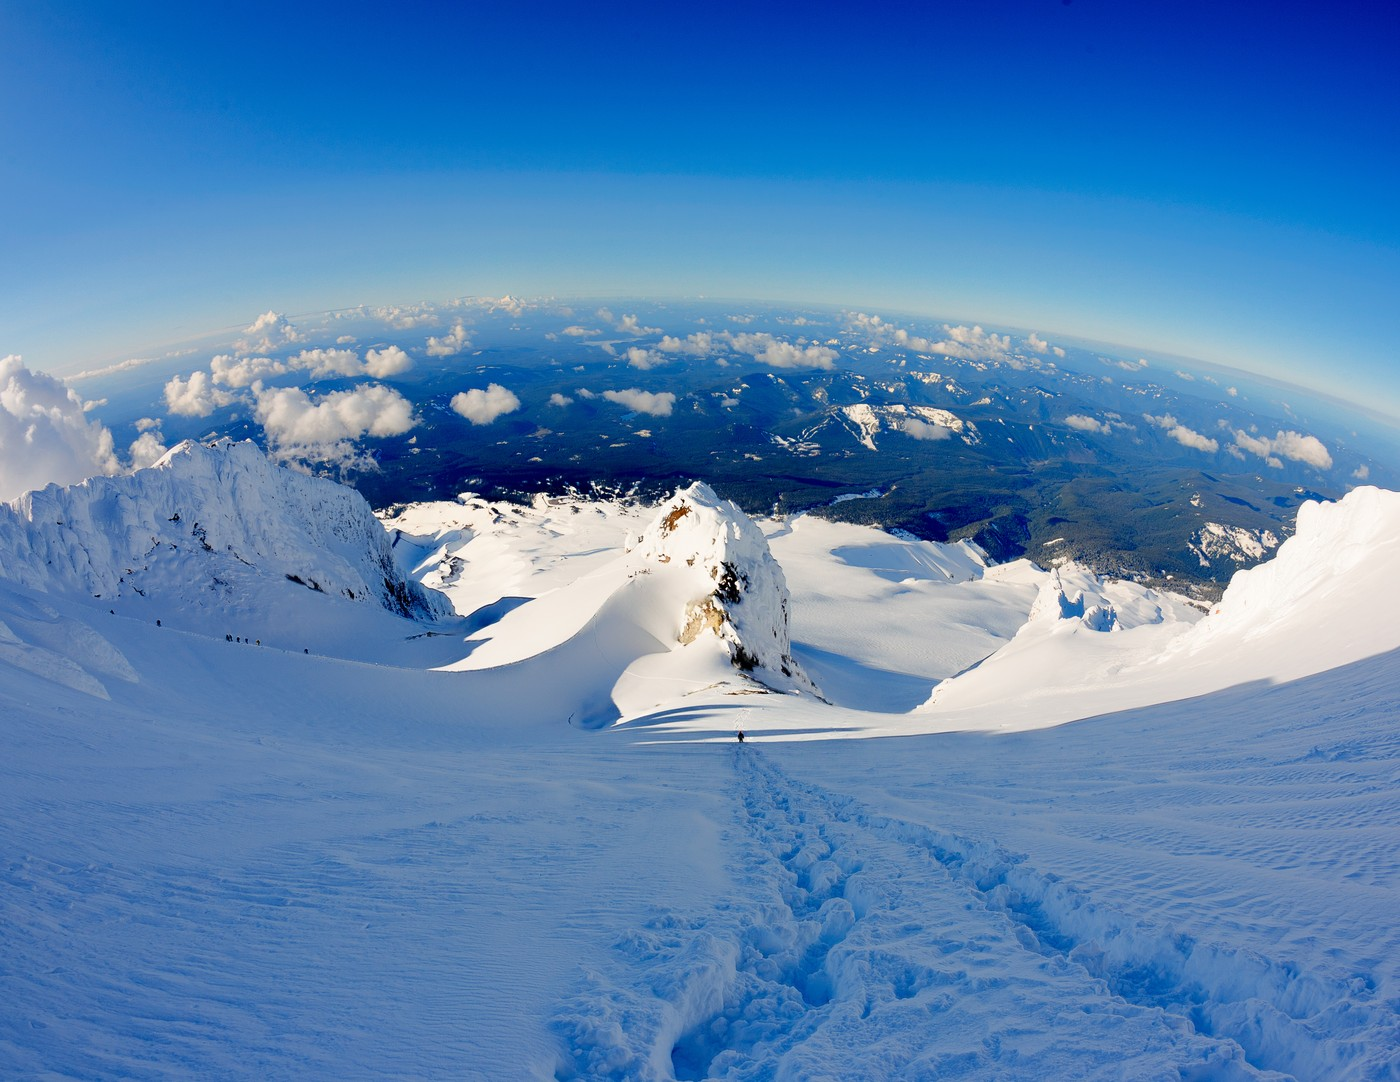 Mt. Hood, Descending to the Hogsback. Andrew Holman Photography